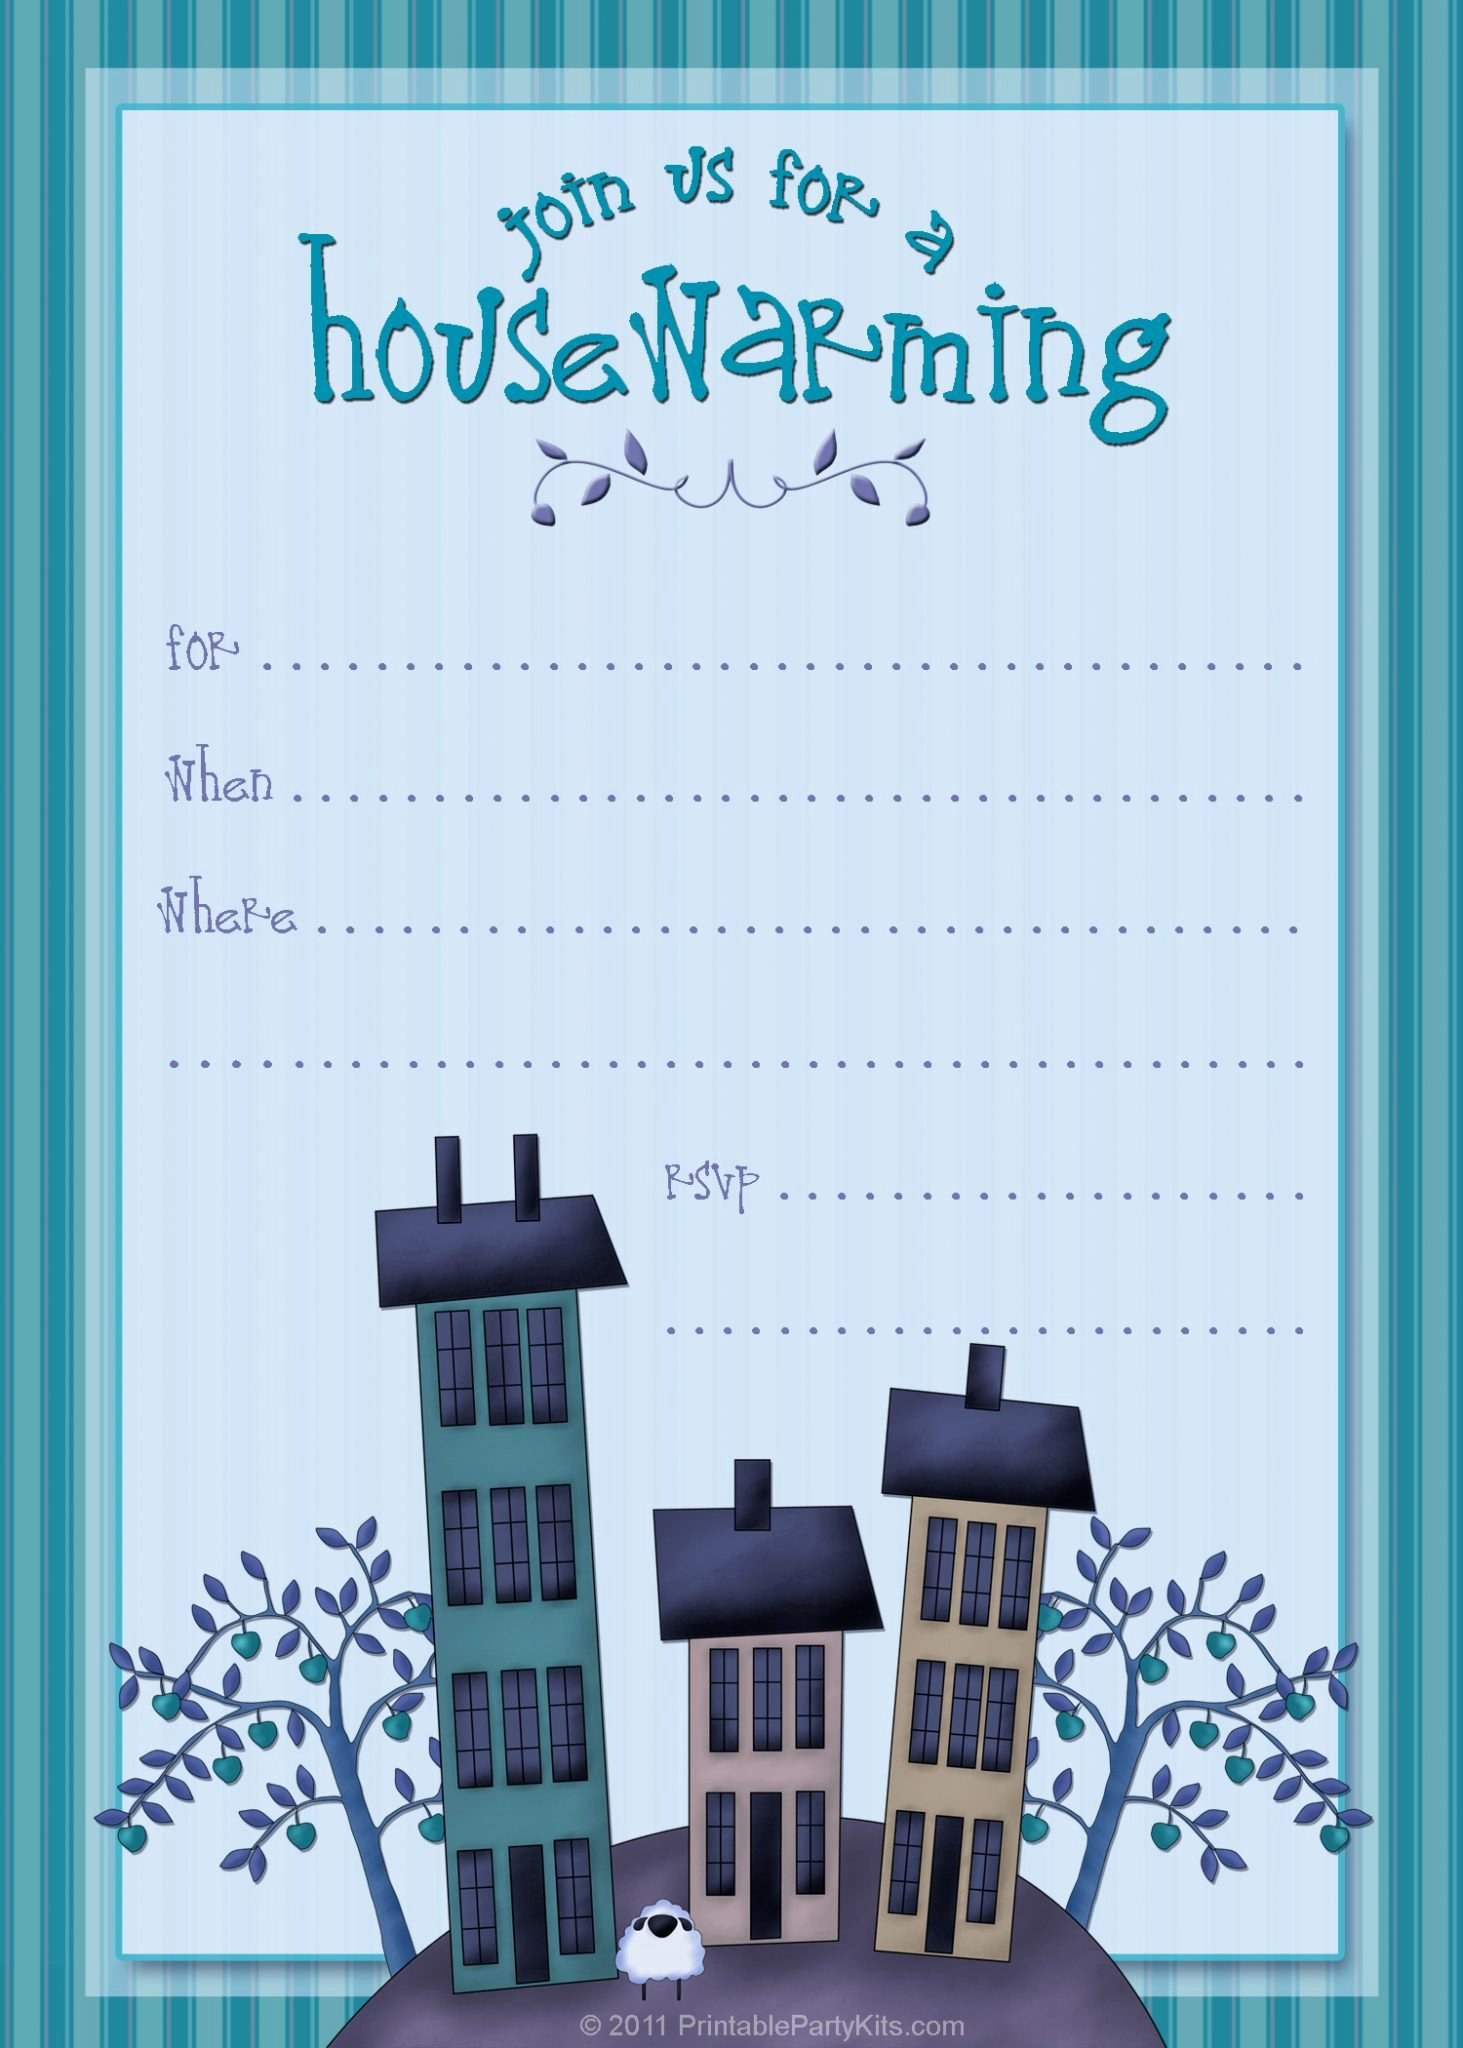 Free Housewarming Invitation Template Lovely Free Printable Housewarming Party Invitations Printable